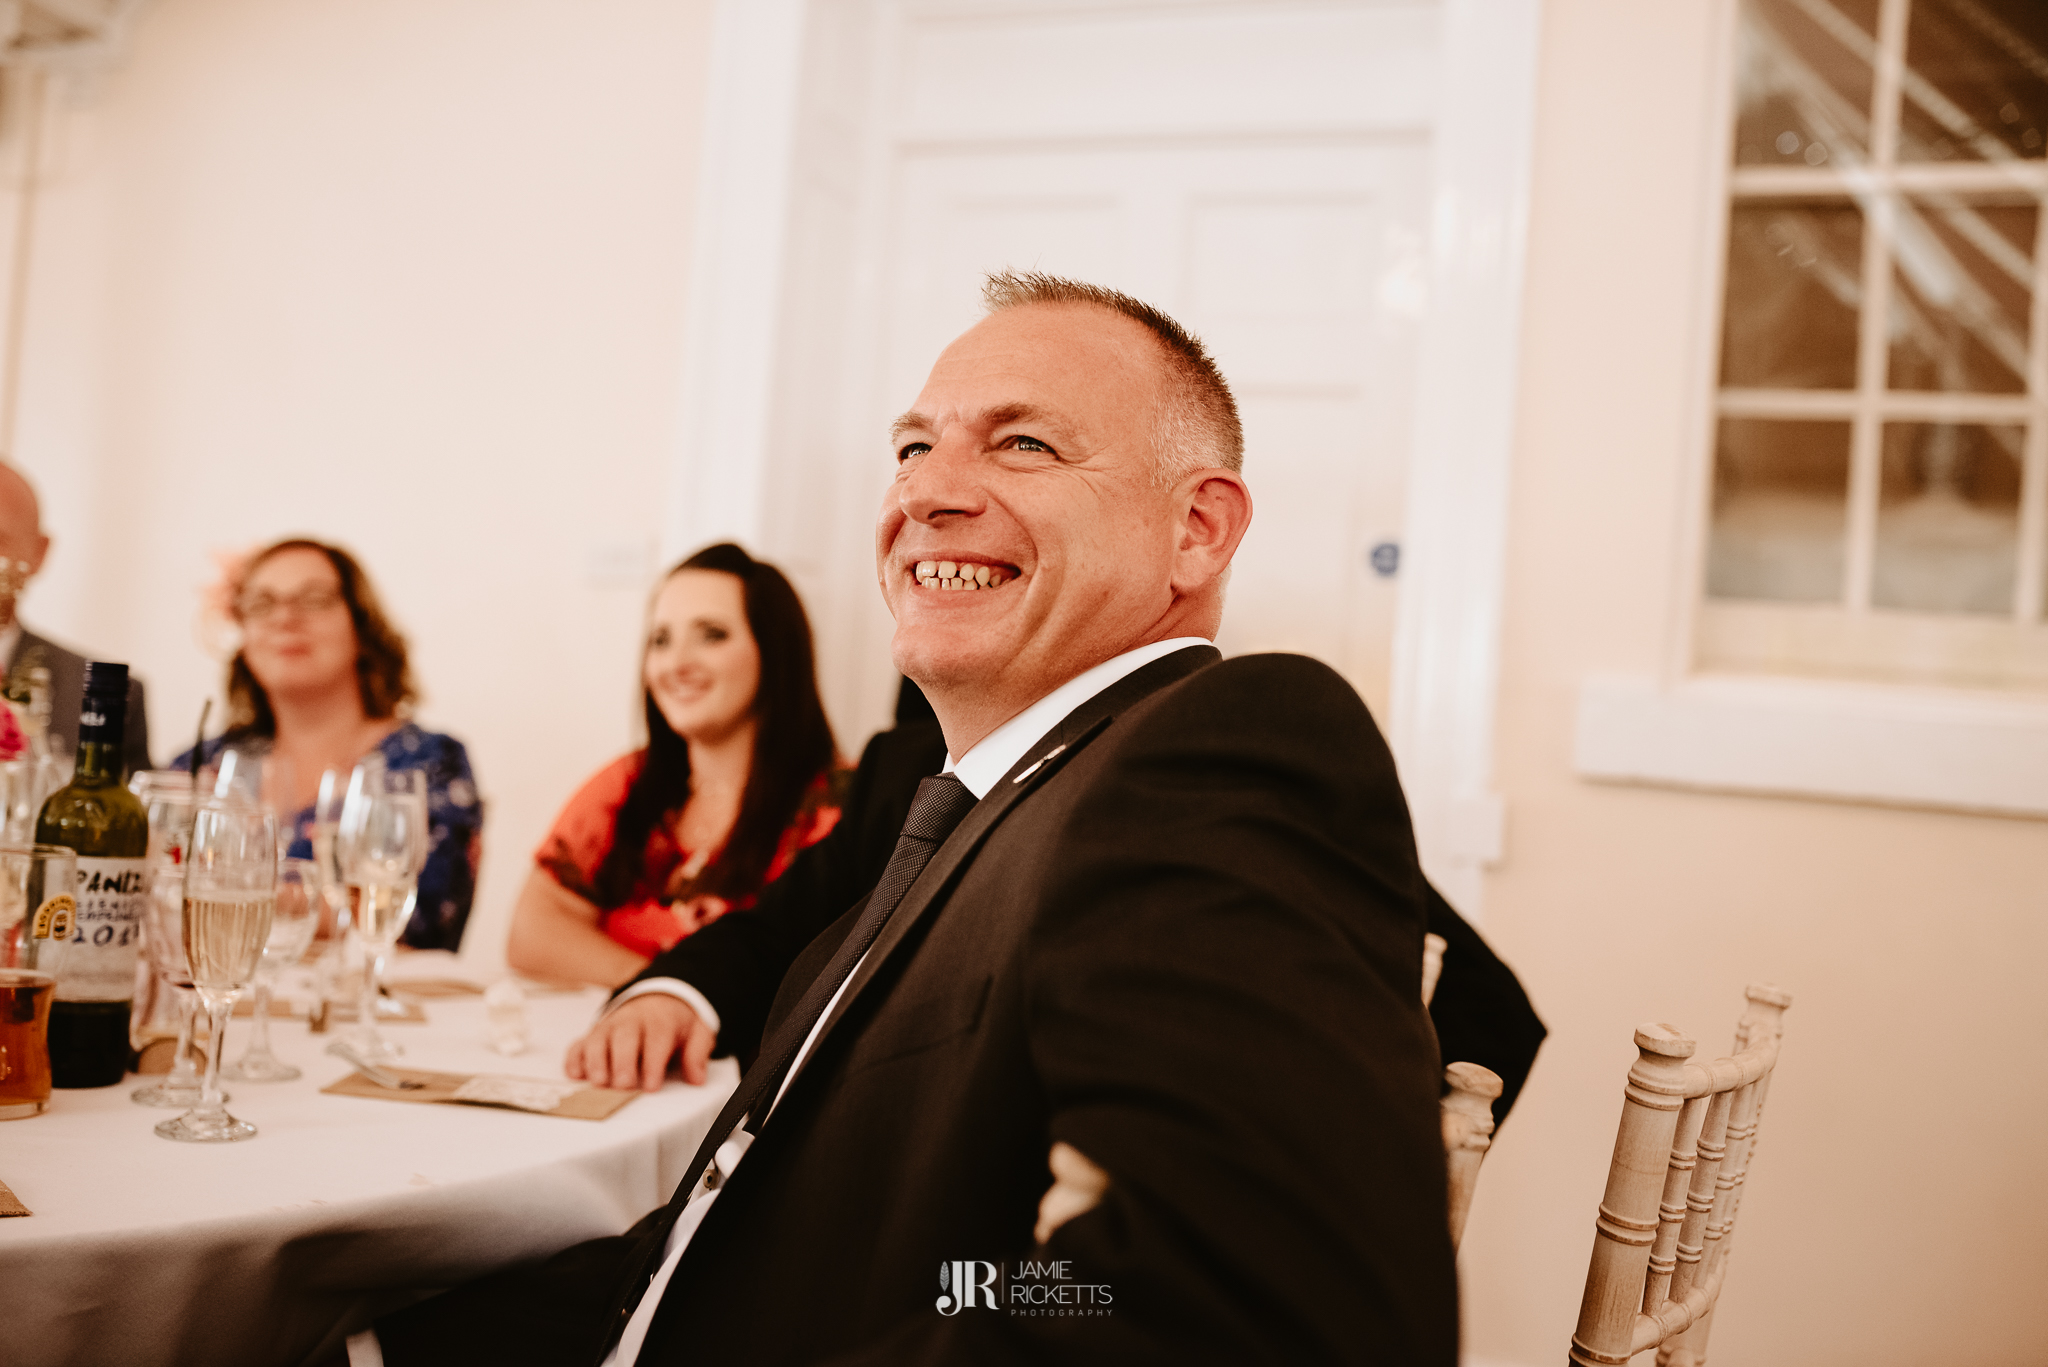 Wroxeter-Hotel-Wedding-Photography-In-Shropshire-By-Shropshire-Wedding-Photographer-Jamie-Ricketts-161.JPG